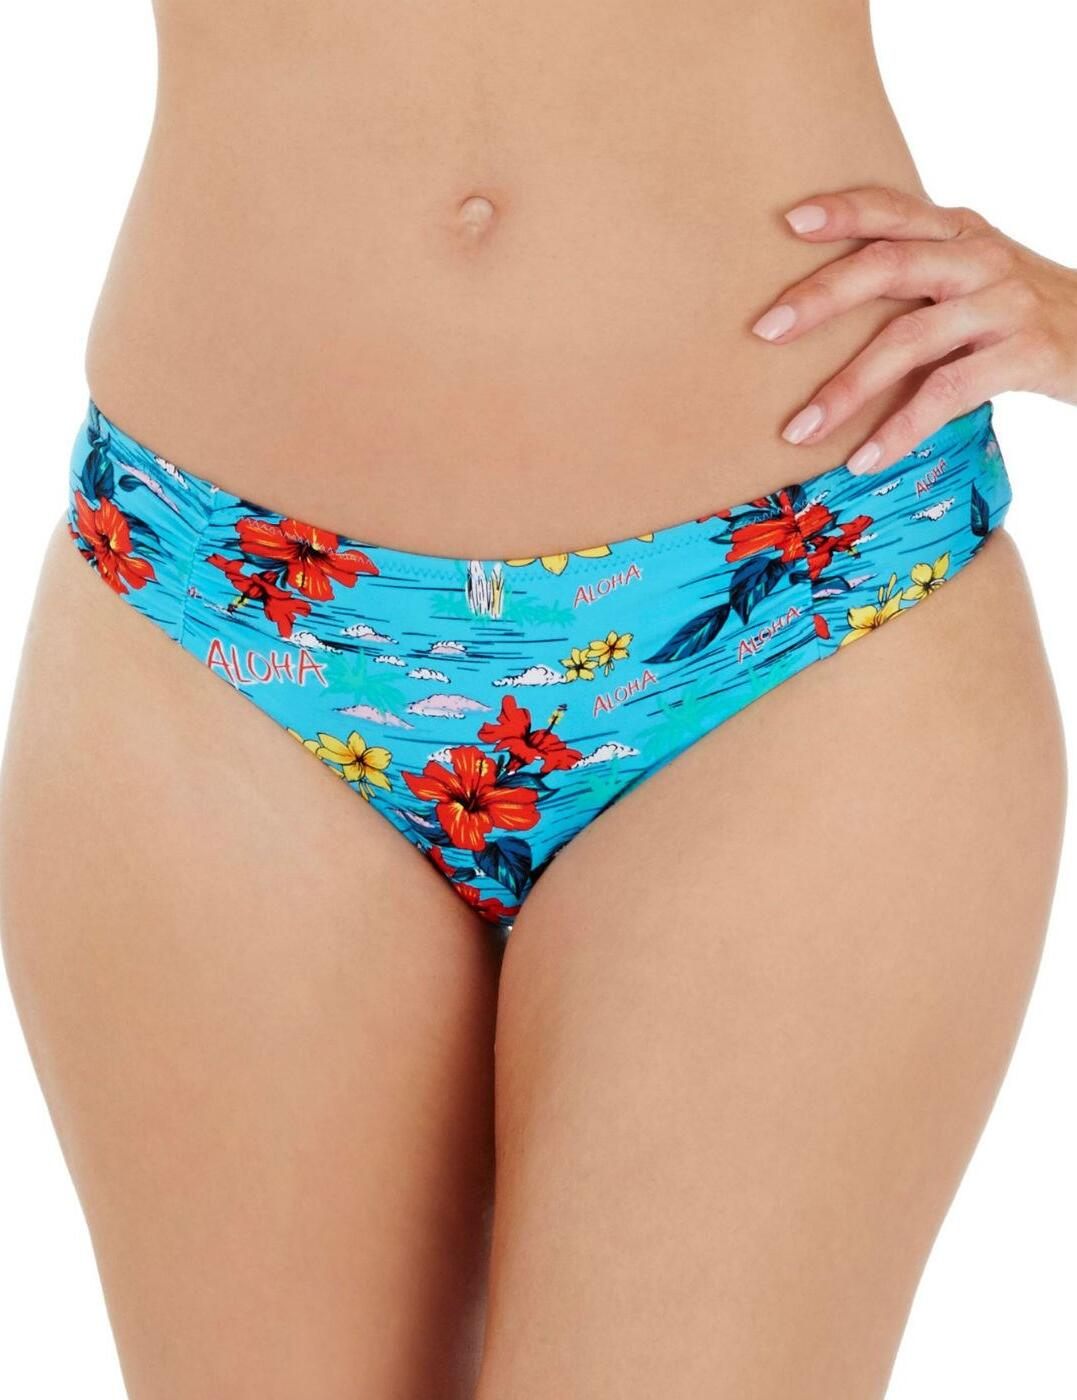 1679790 Lepel Aloha Low Rise Bikini Pant Blue Multi - 1679790 Bikini Brief